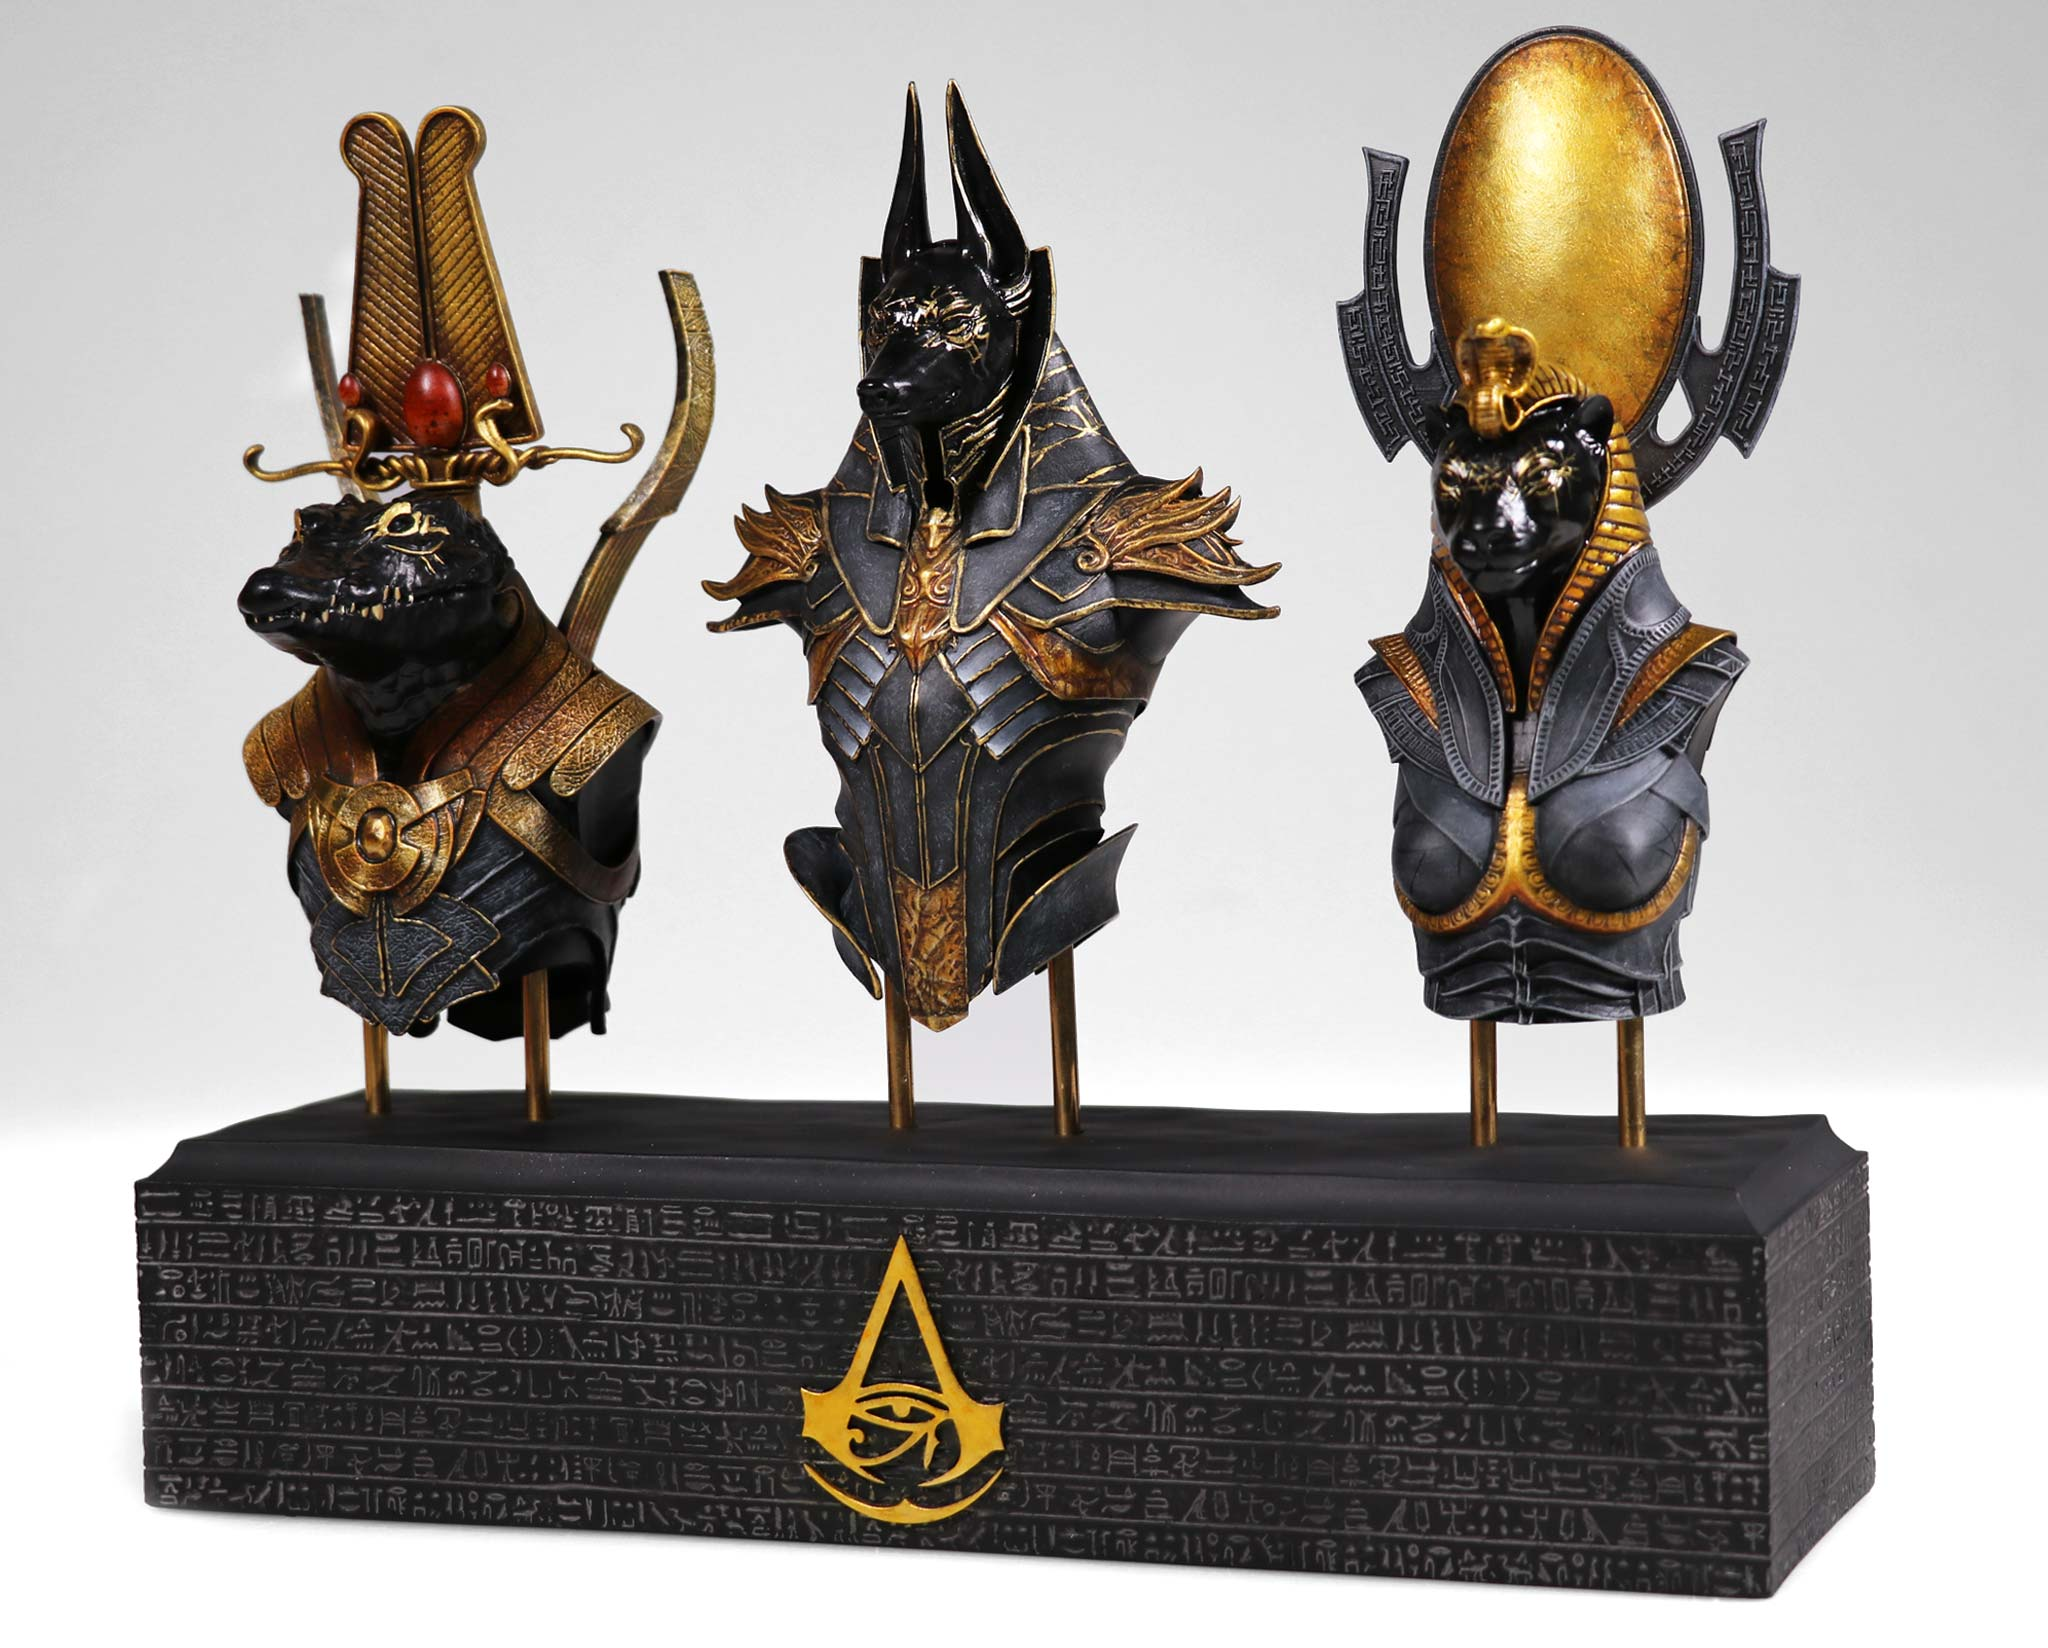 ASSASSIN'S CREED ORIGINS – TRIAL OF THE GODS FIGURINE